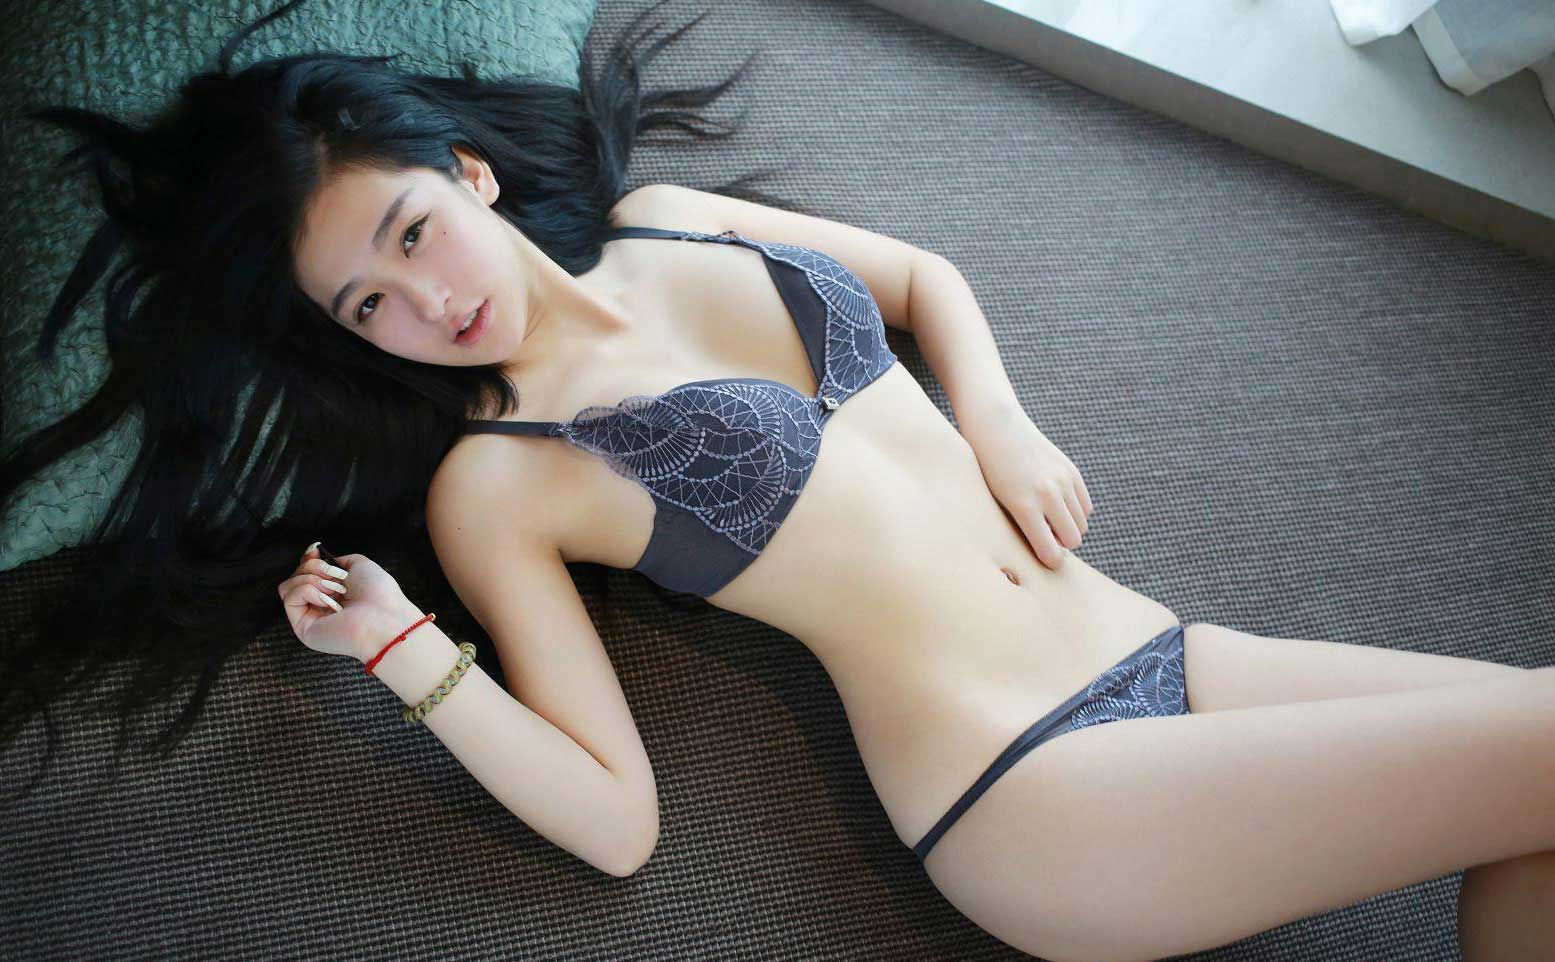 montra thai massage escort i göteborg